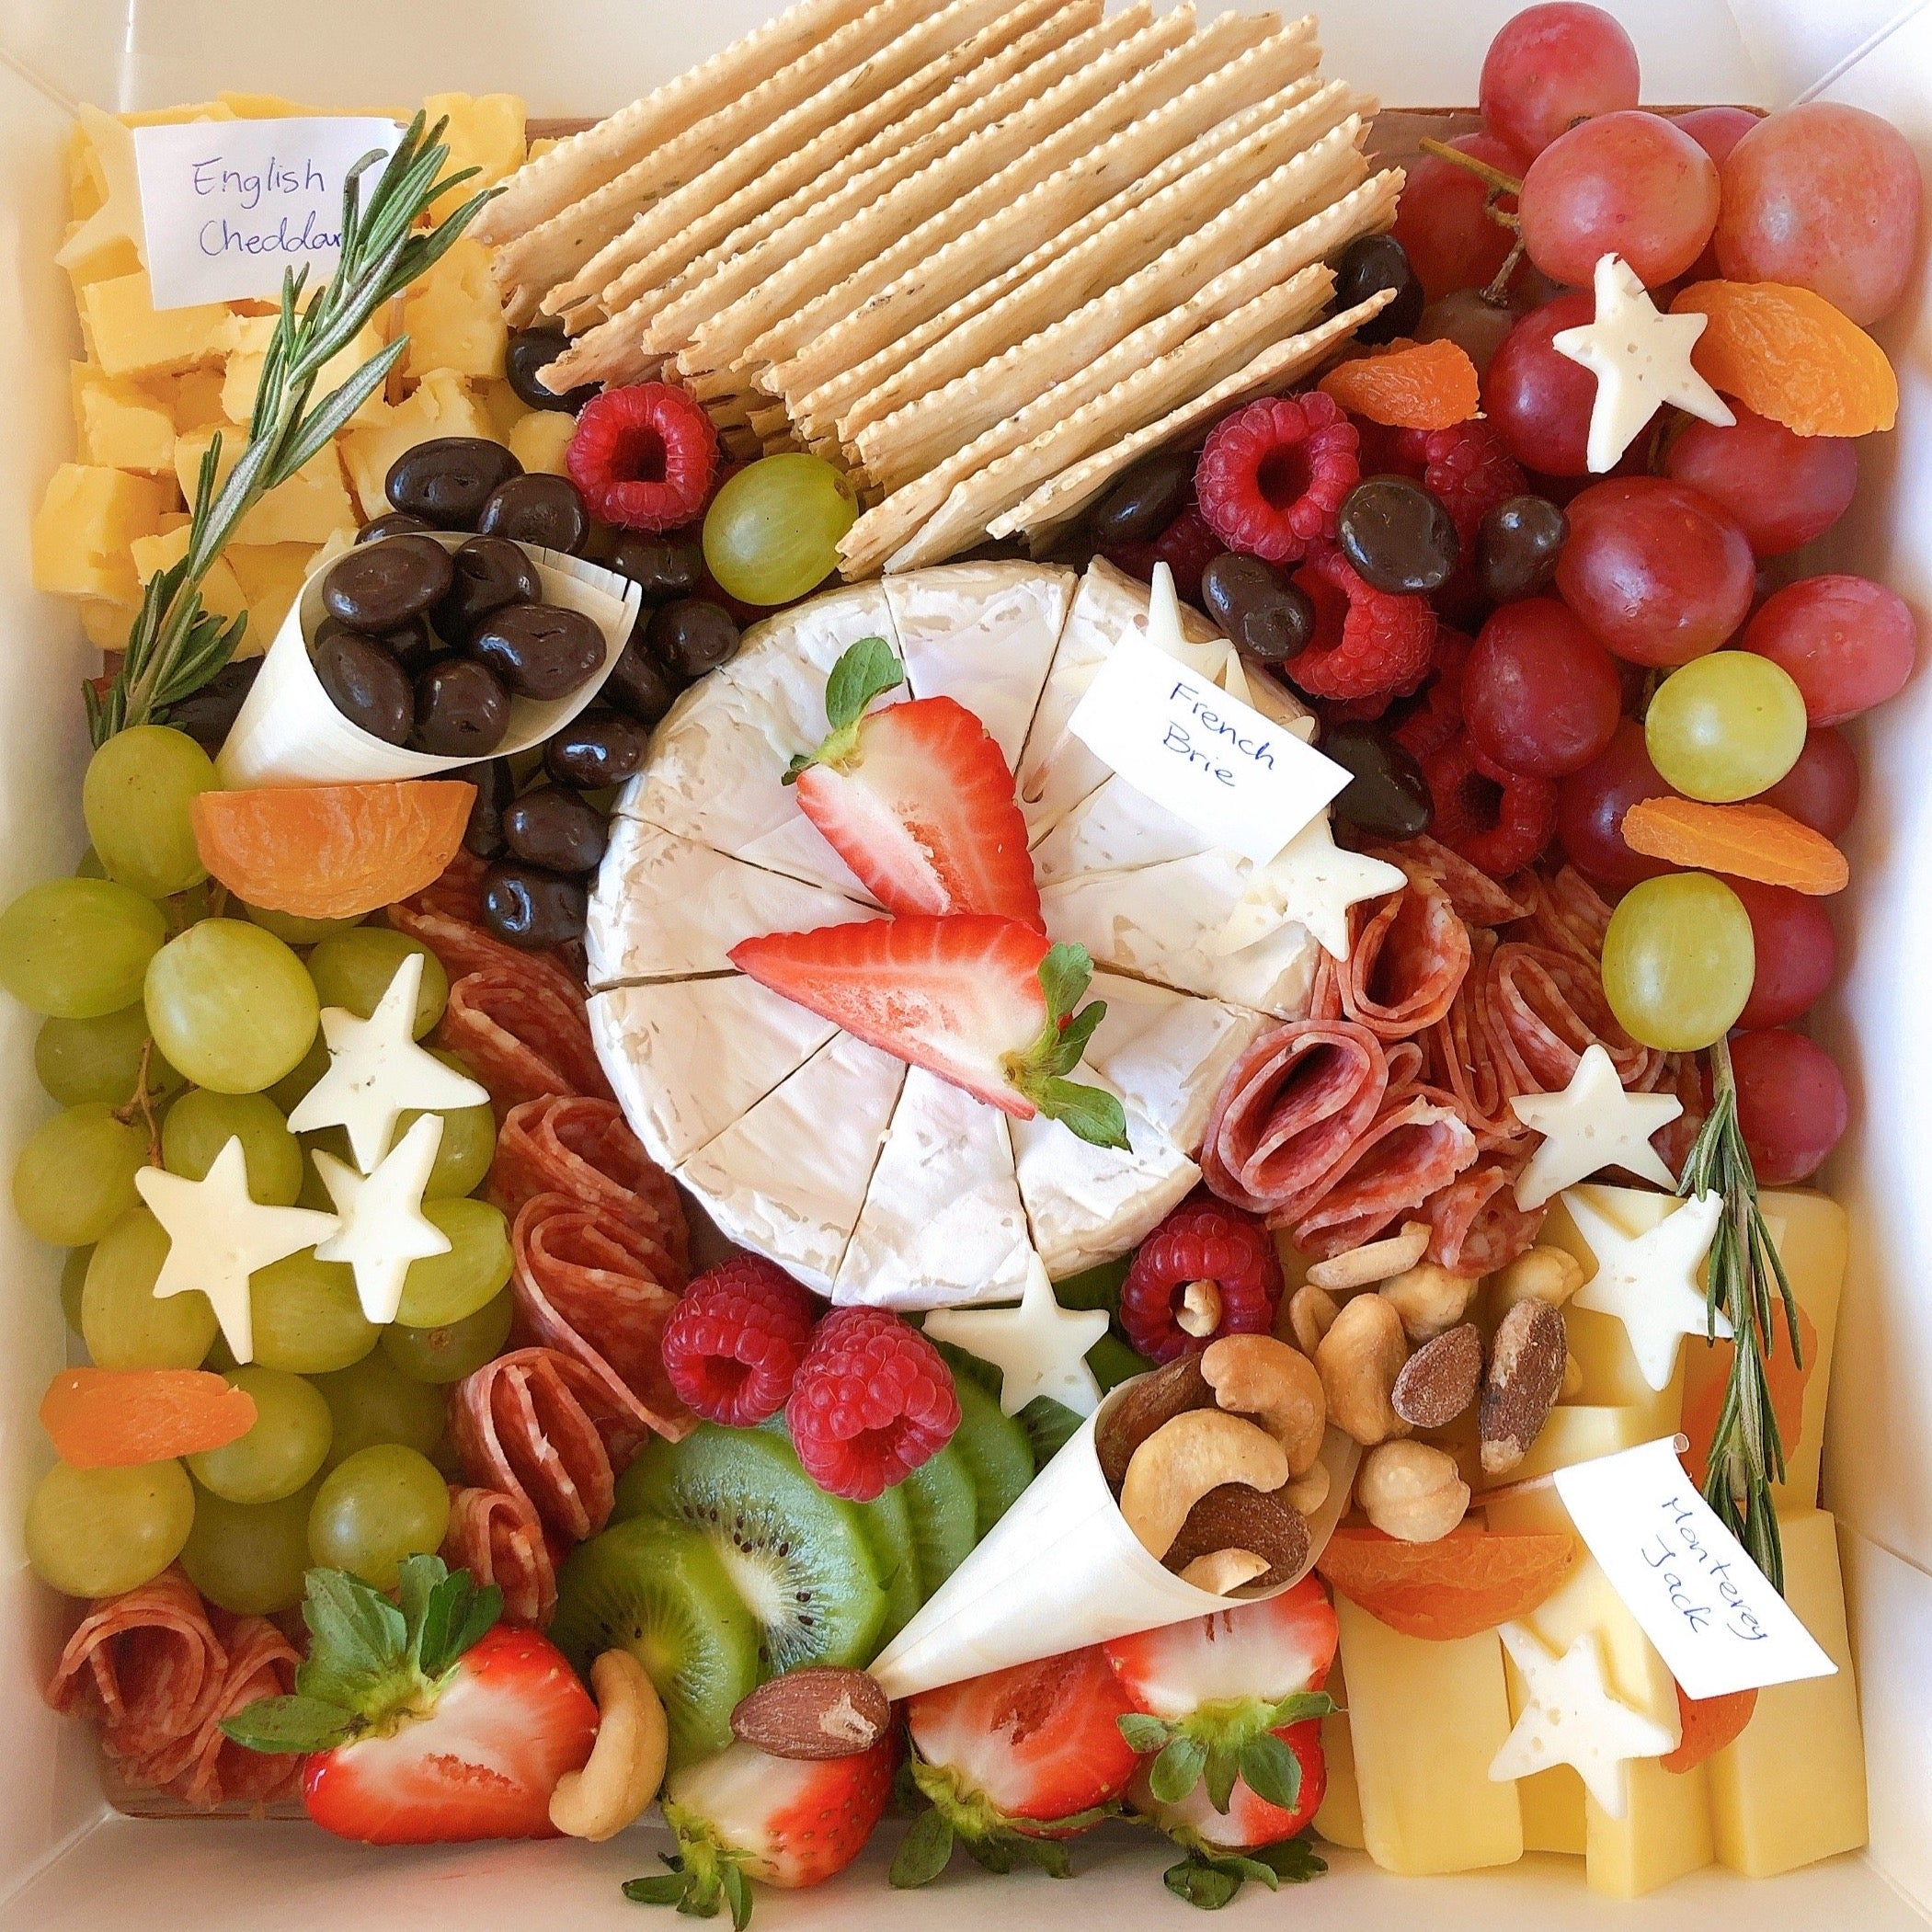 Small Cheeseboard For 5-7 People